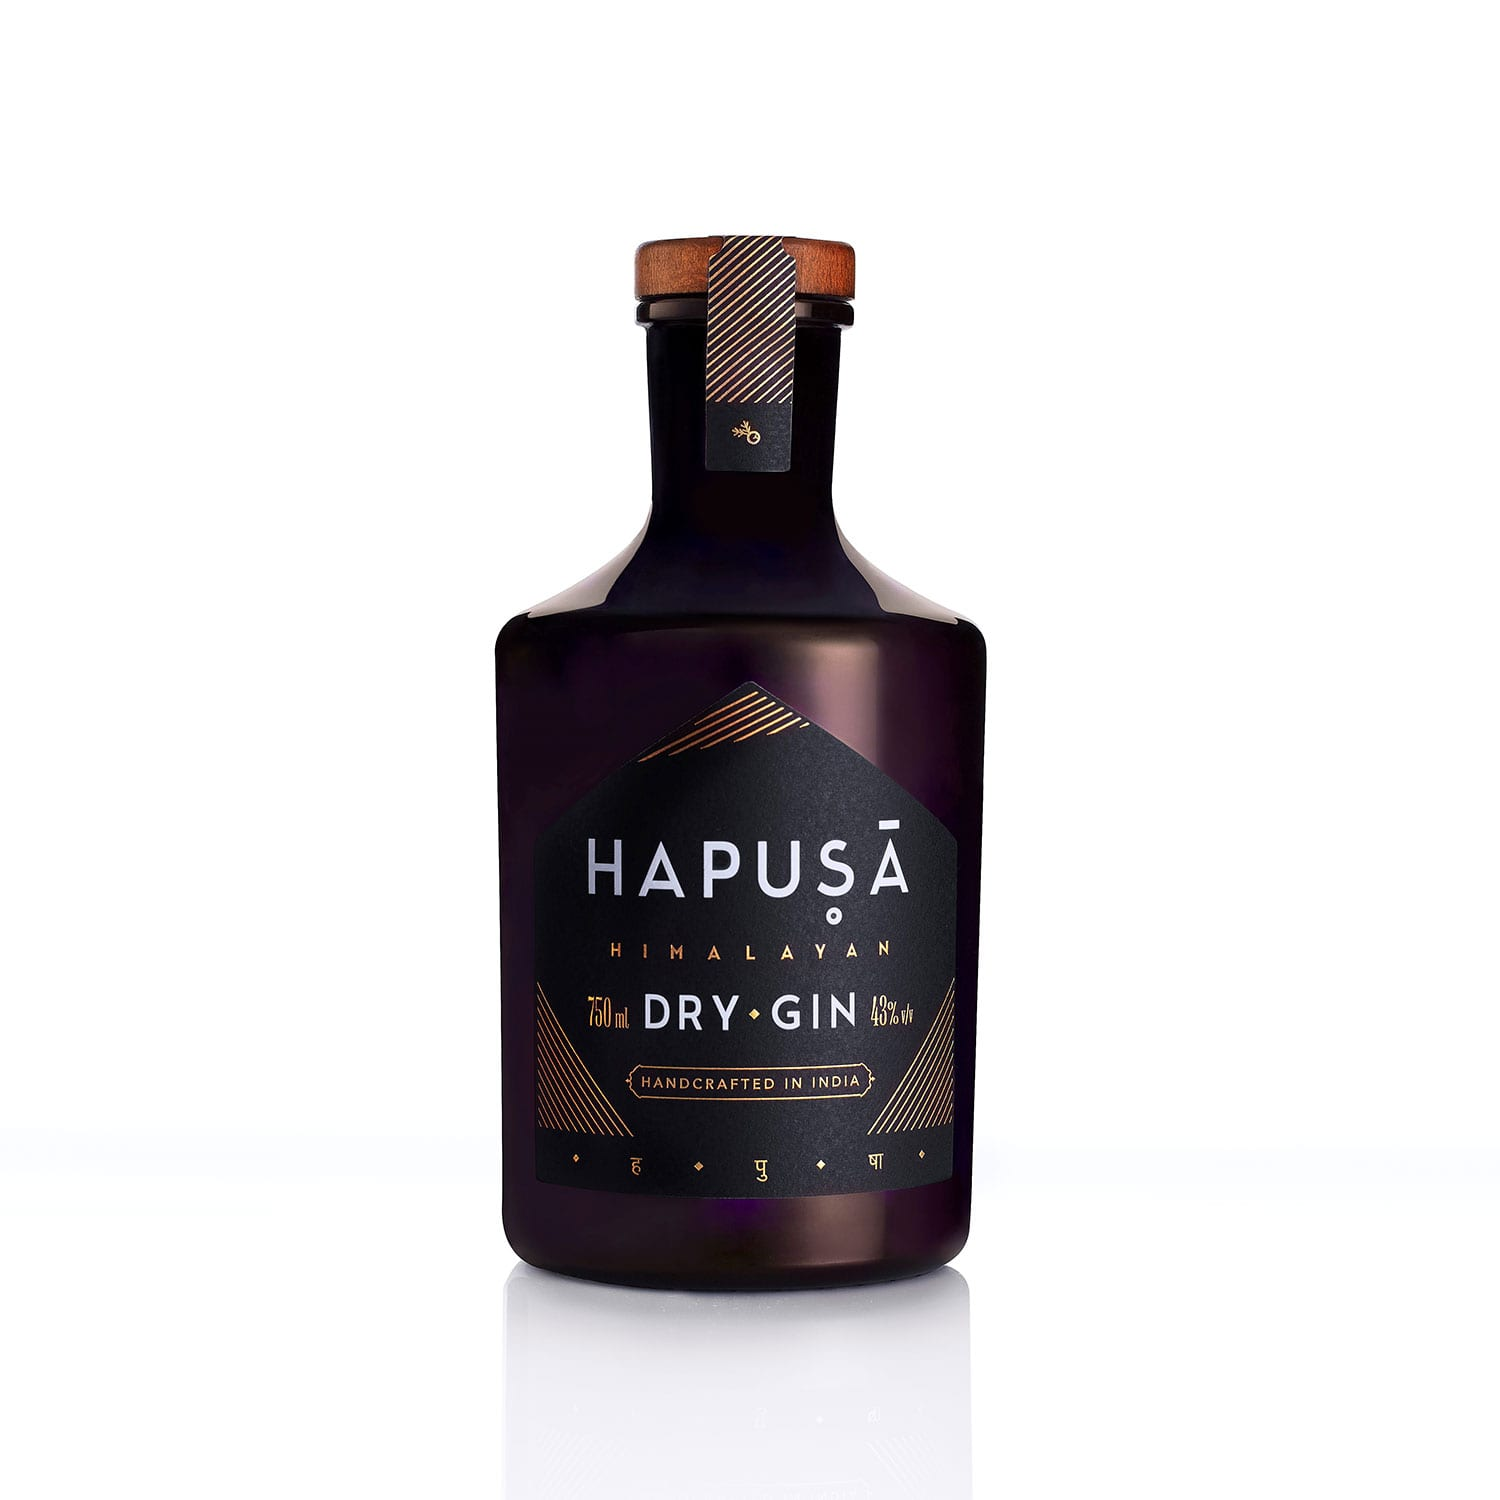 Hapusa Himalayan gin bottle - 2019 design